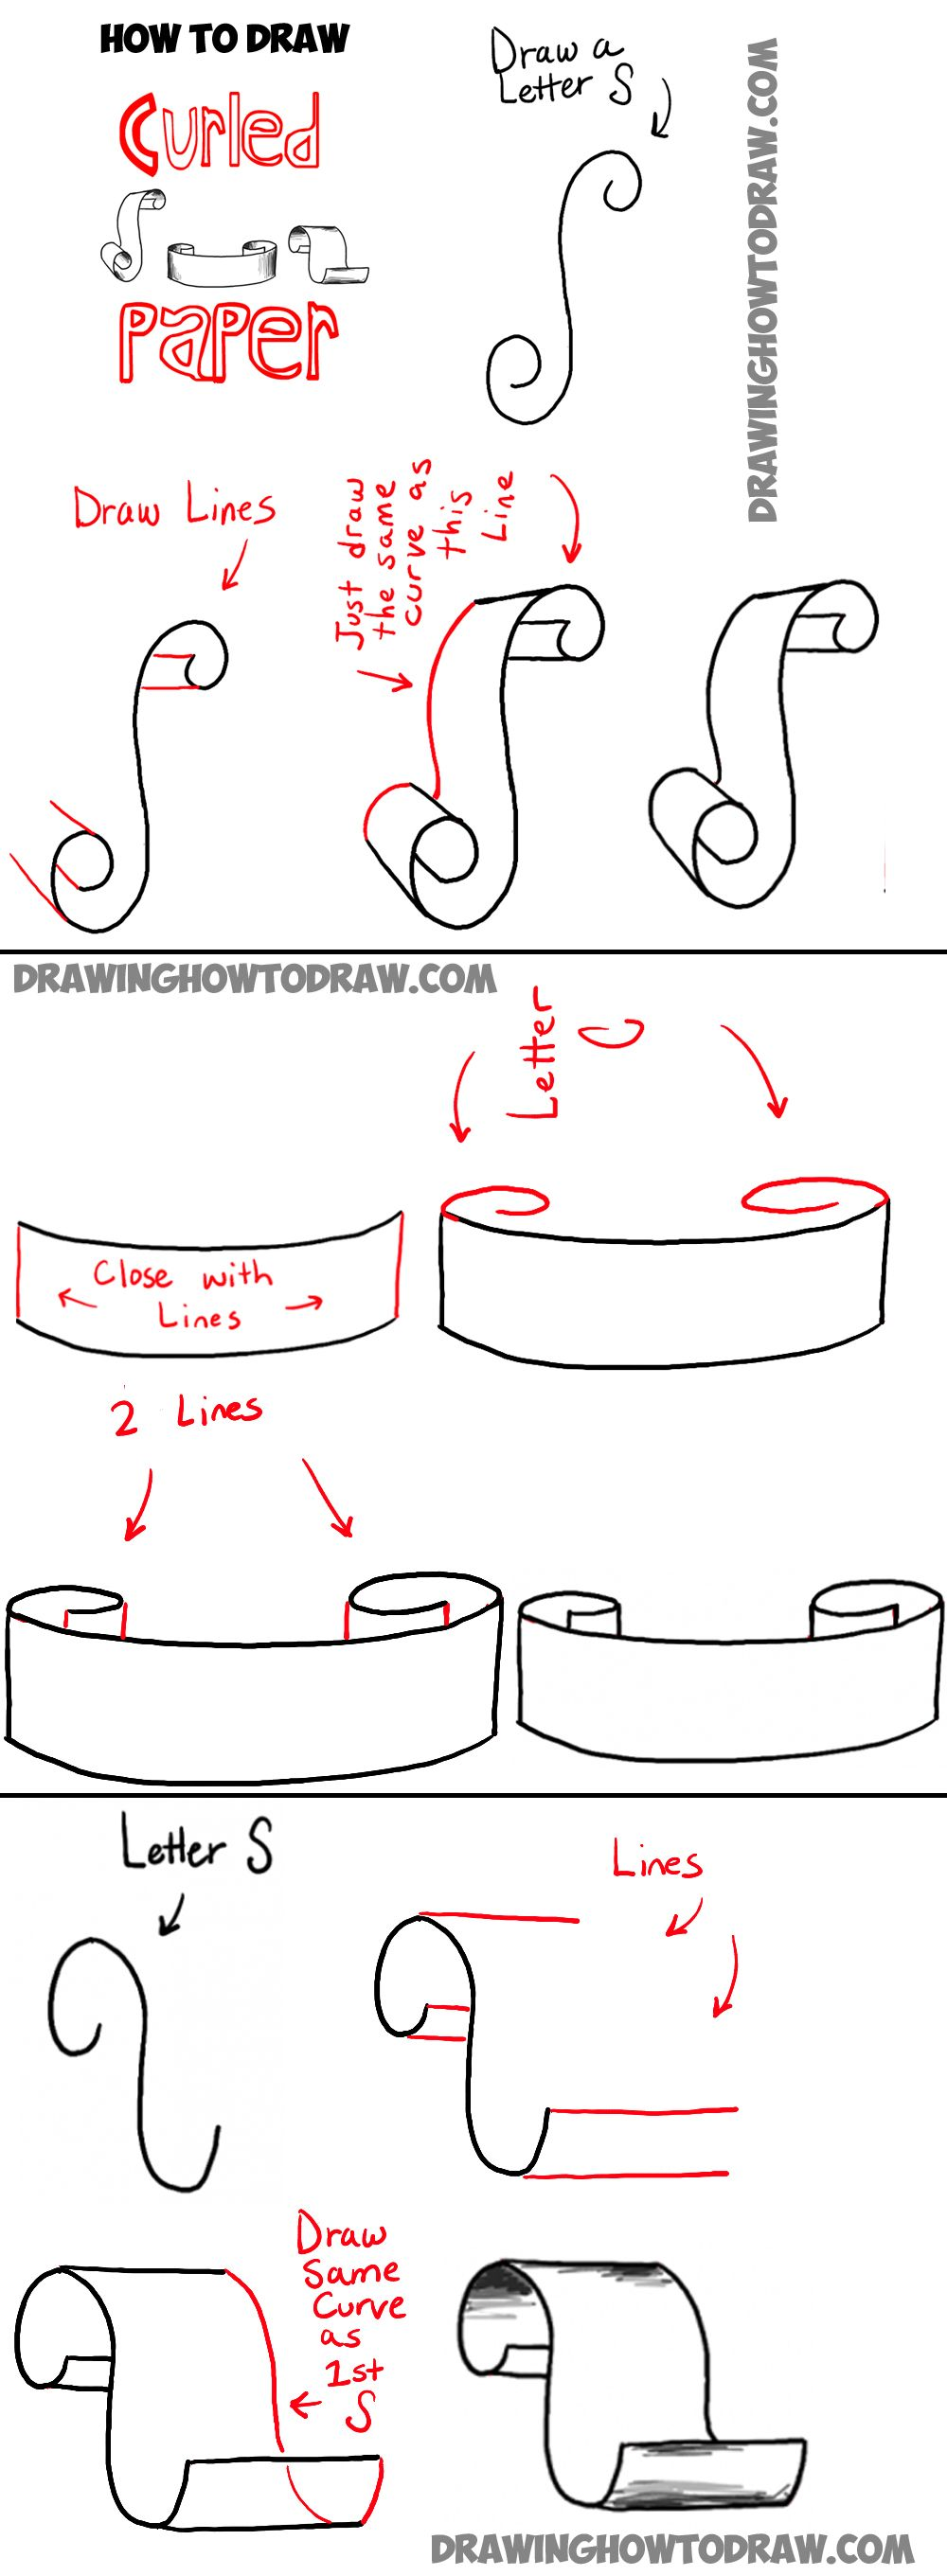 How To Draw Paper Curls Or Curled Paper Scrolls Or Banners In Easy Steps Tutorial How To Draw Step By Step Drawing Tutorials Banner Drawing Bullet Journal Inspiration Planner Bullet Journal